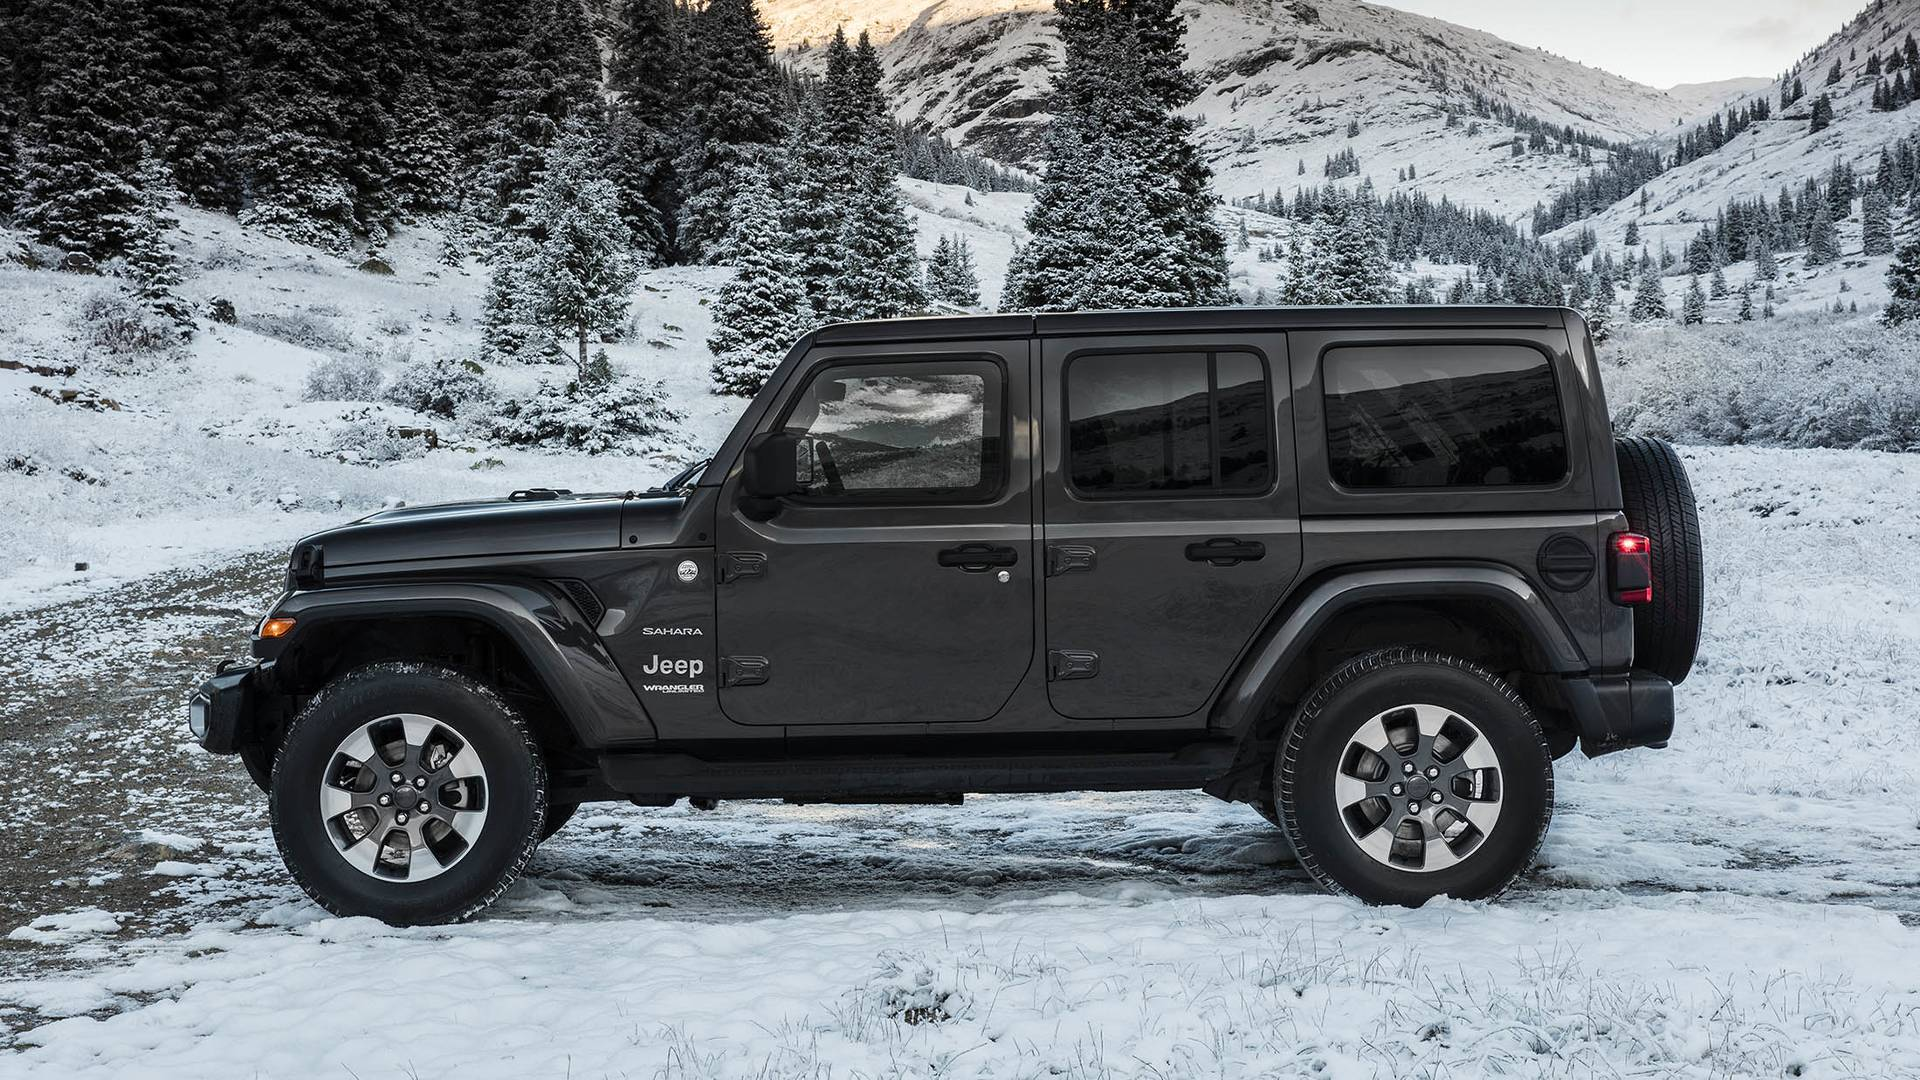 61 Best 2020 The Jeep Wrangler Interior